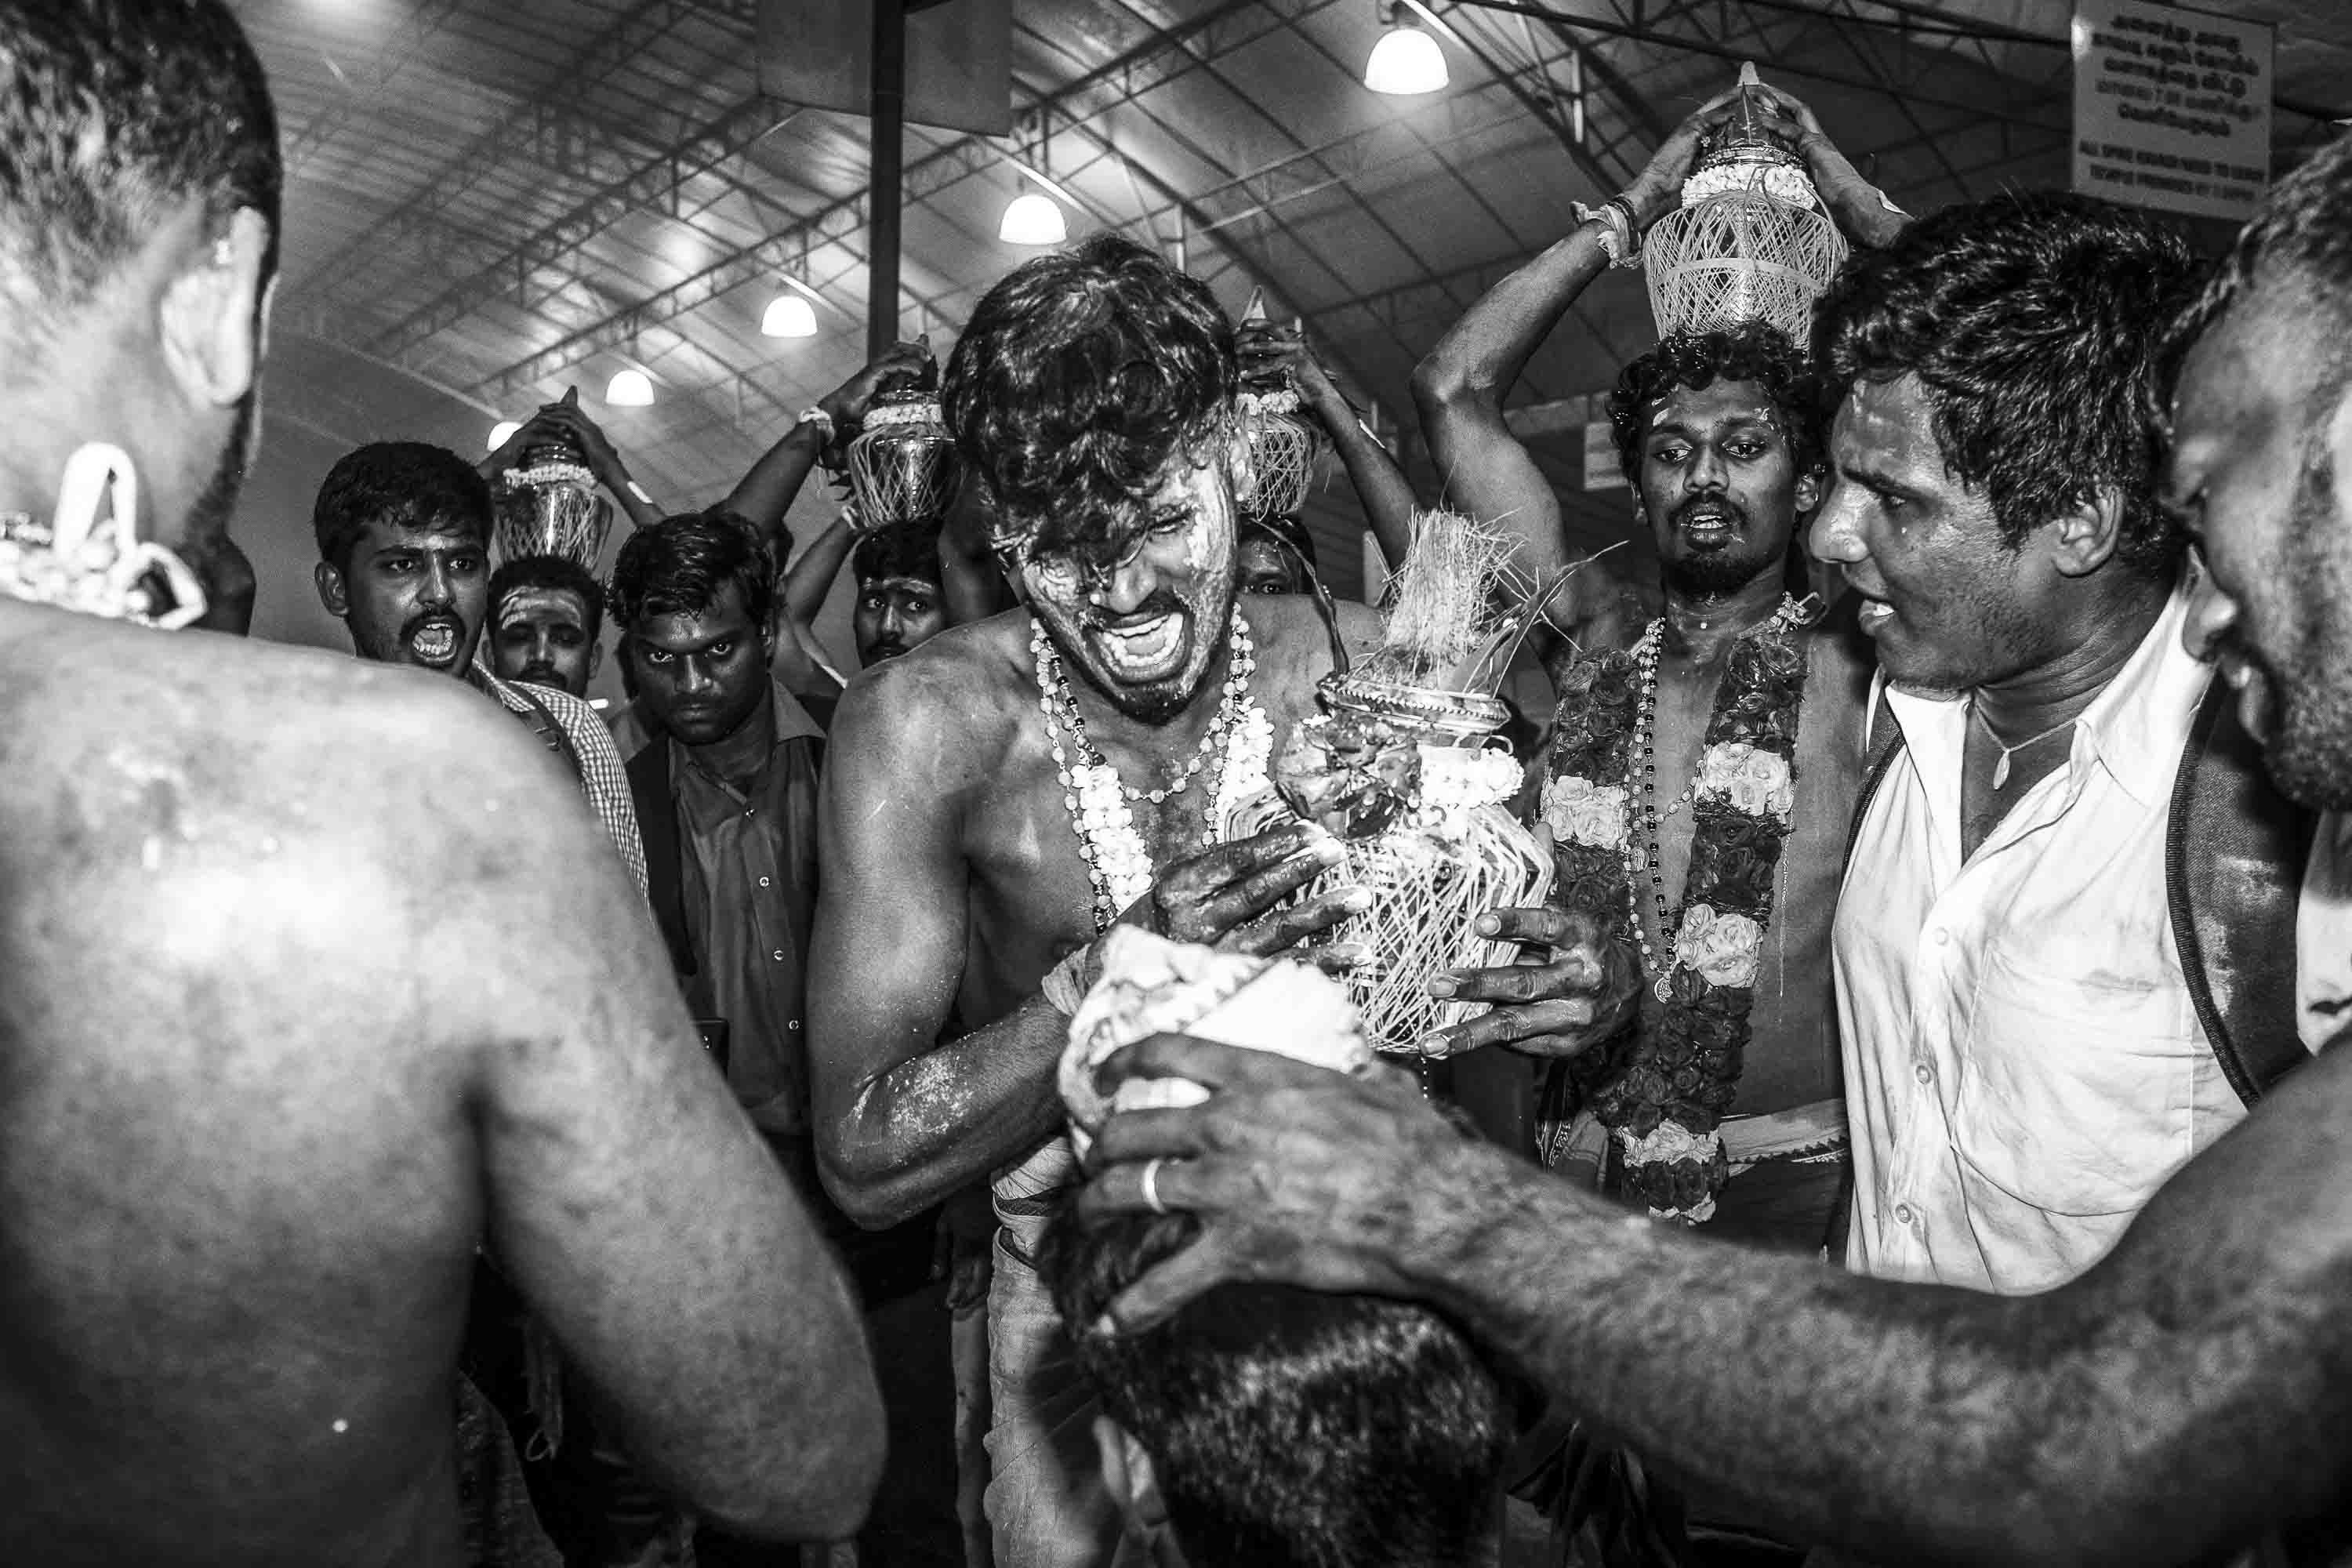 ceremony indian Little India Thaipusam Festival hindu Singapore photography jose jeuland documentary event